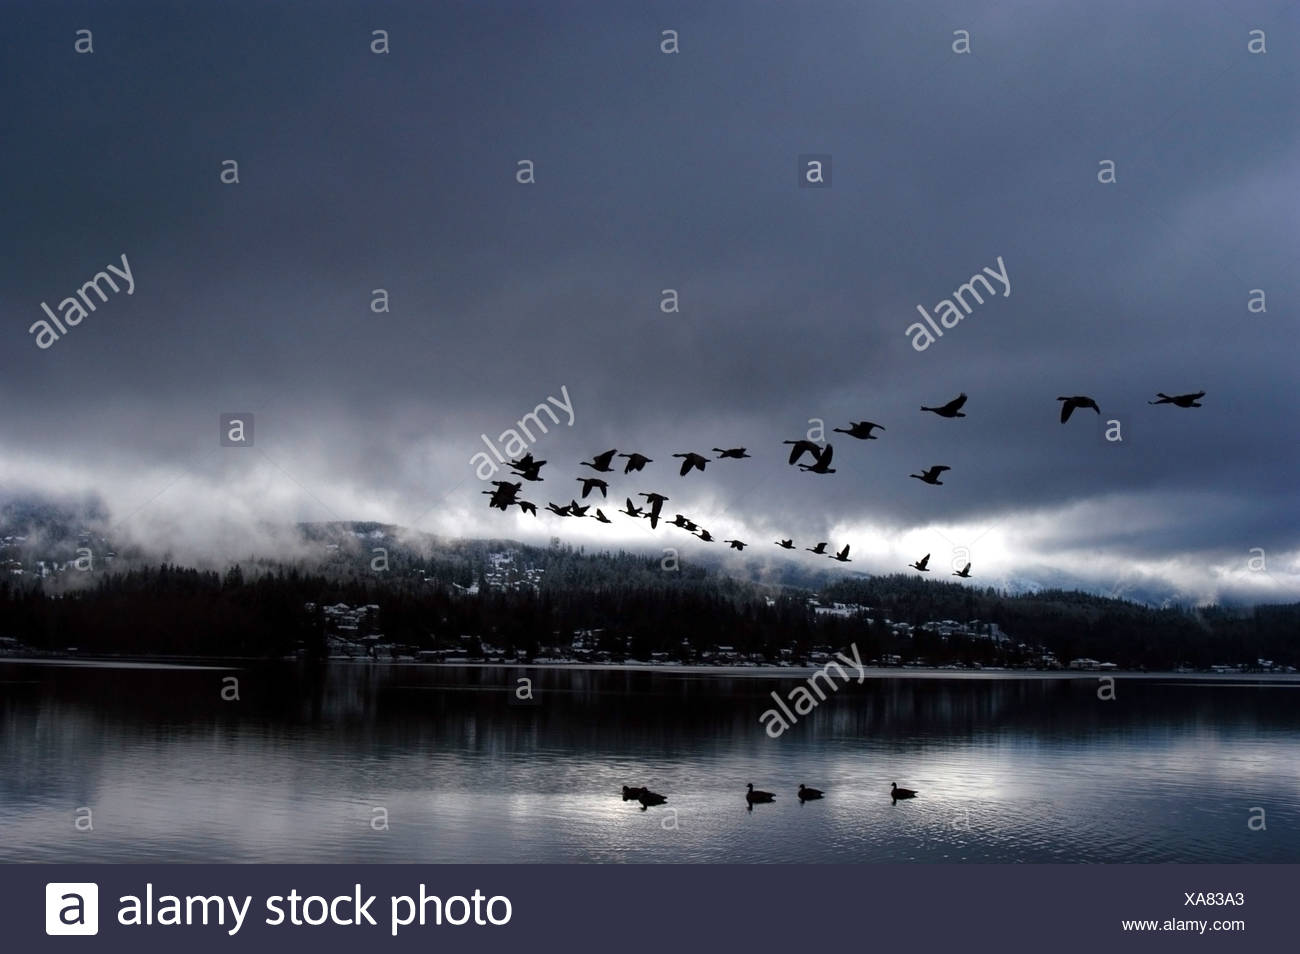 A flock of Canadian Geese fly over Lake Whatcom in V formation during a storm; Bellingham, WA - Stock Image